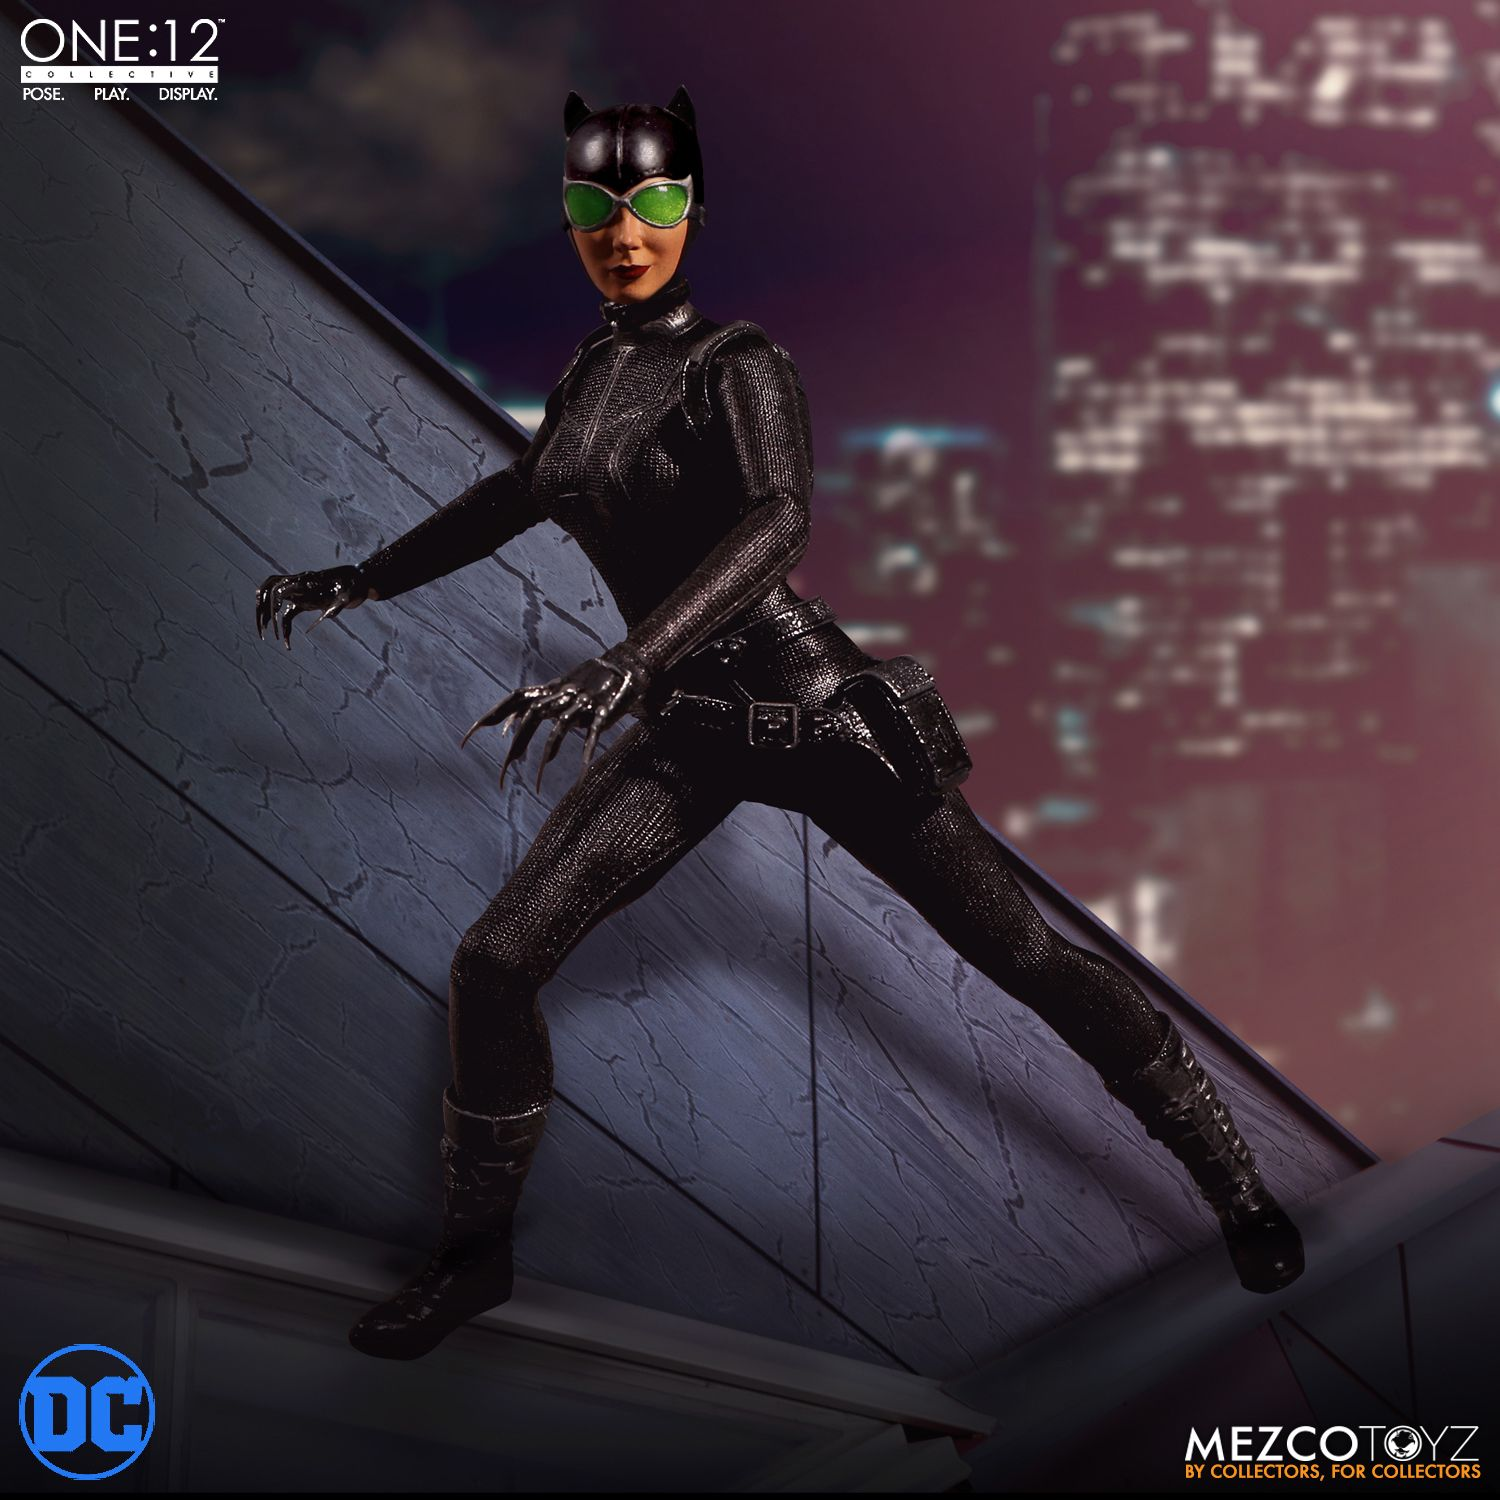 Mezco One12 Collective Dc Comics Catwoman Promotional Images And